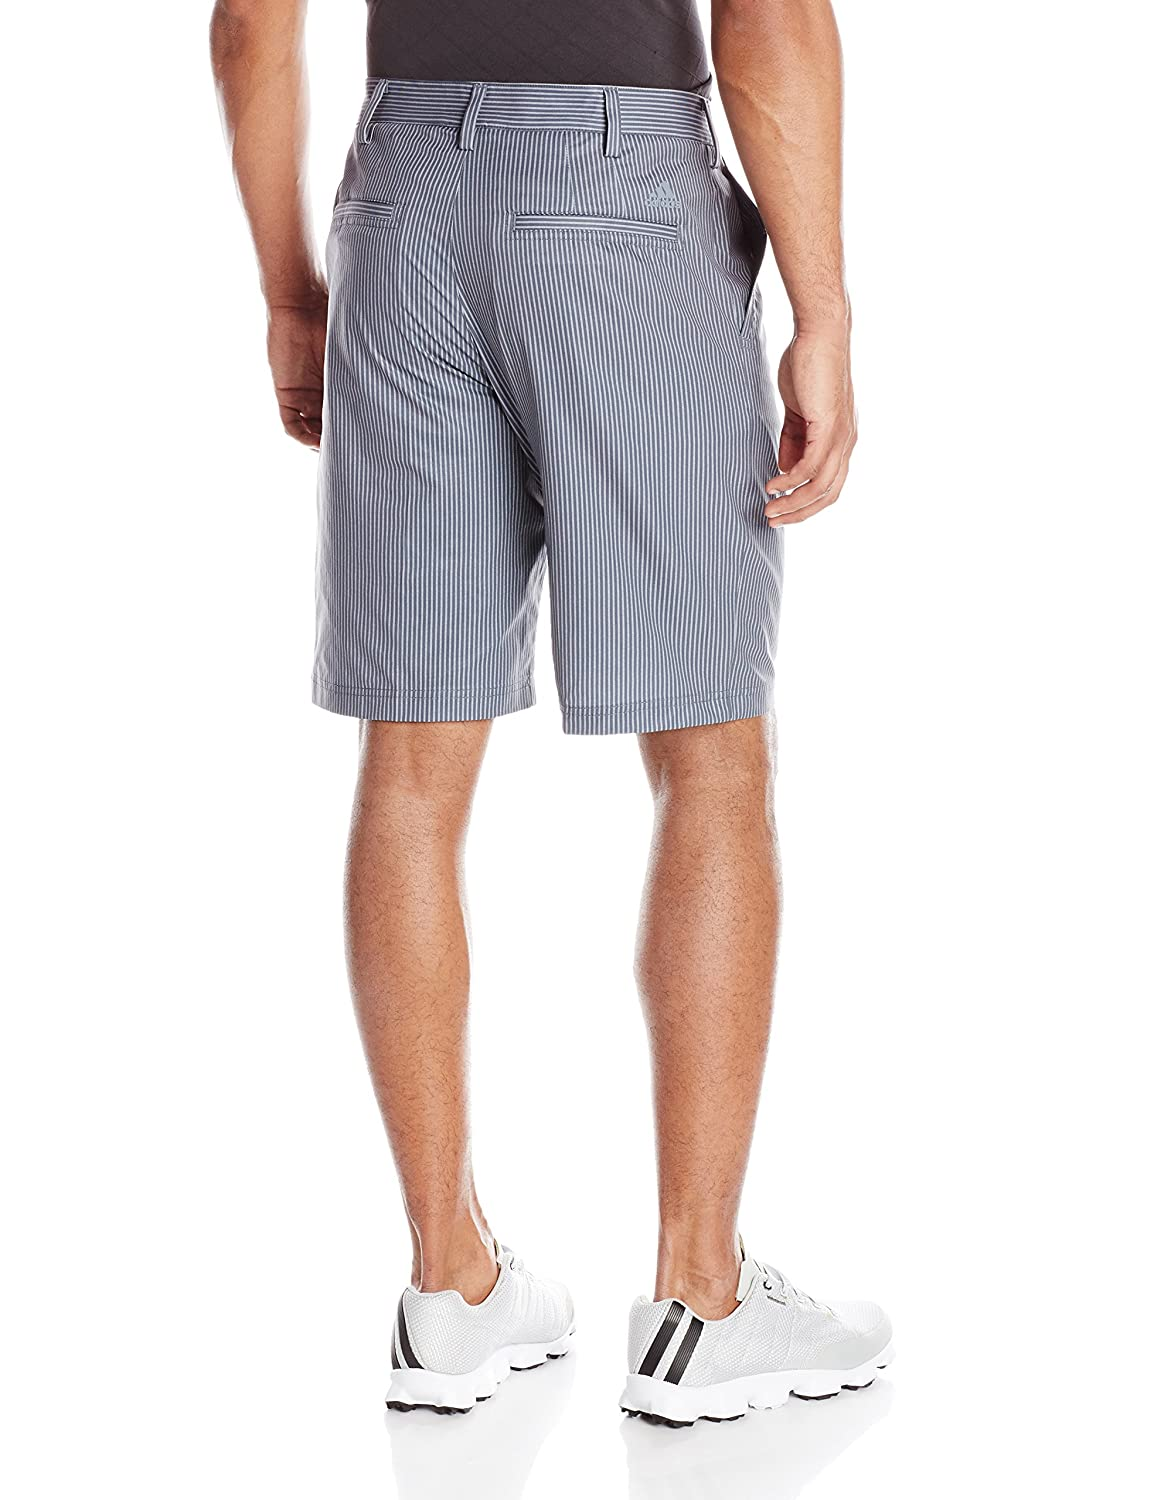 c279932e2069f Amazon.com : adidas Golf Men's Broken Pinstripe Shorts : Sports & Outdoors